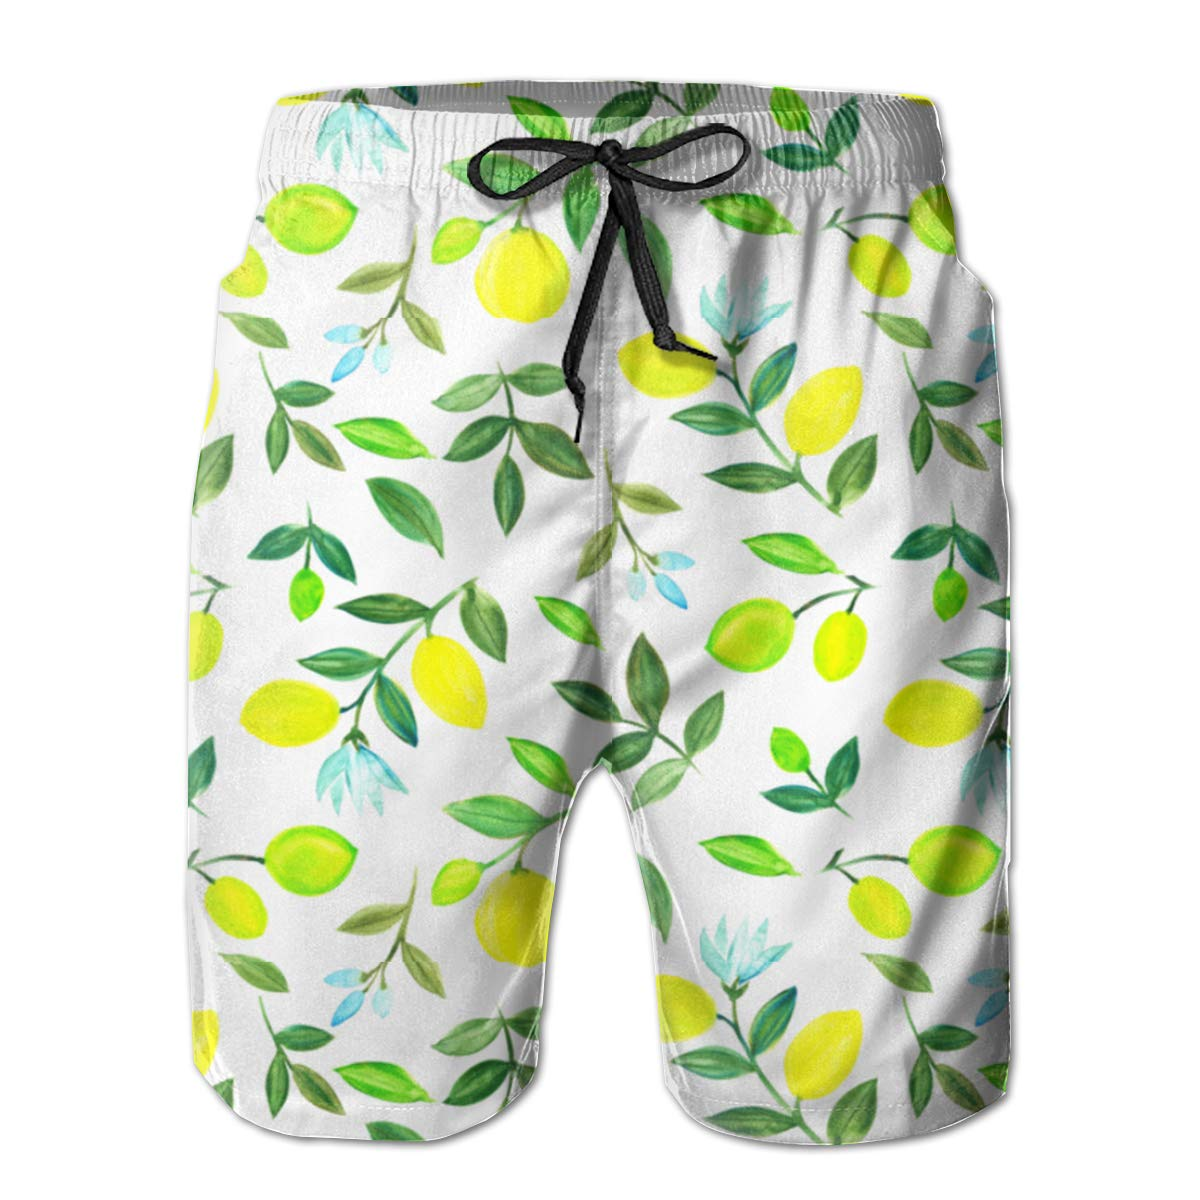 FASUWAVE Mens Swim Trunks Watercolor Lemons Quick Dry Beach Board Shorts with Mesh Lining